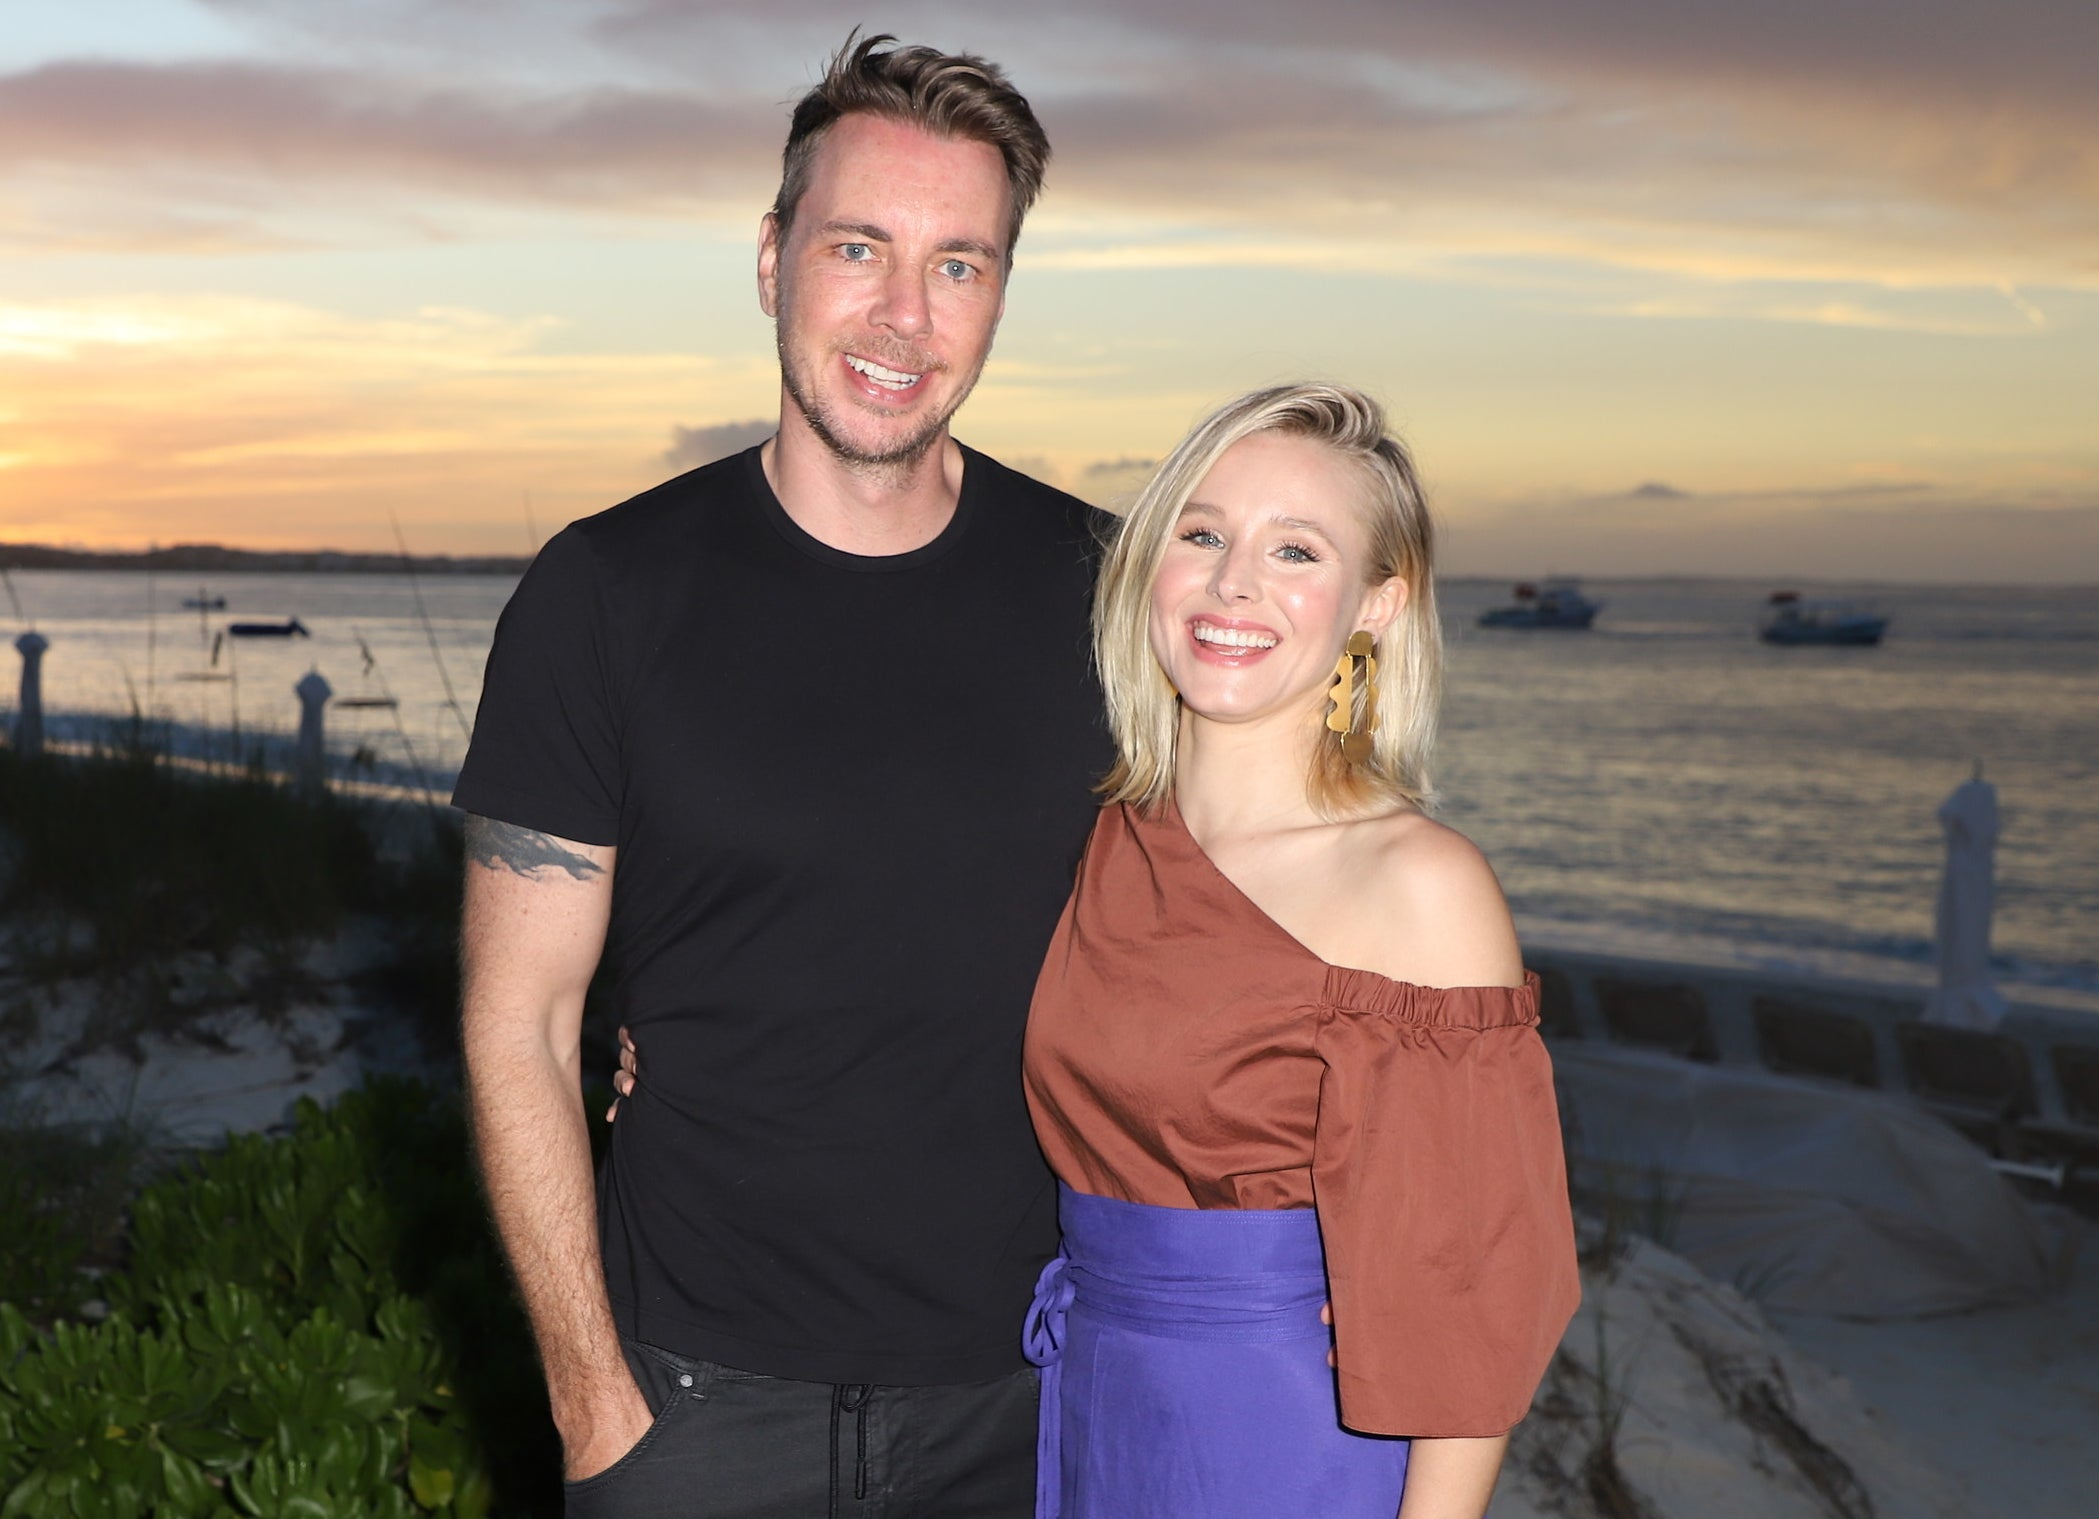 Dax and Kristen smile in front of a beach during sunset